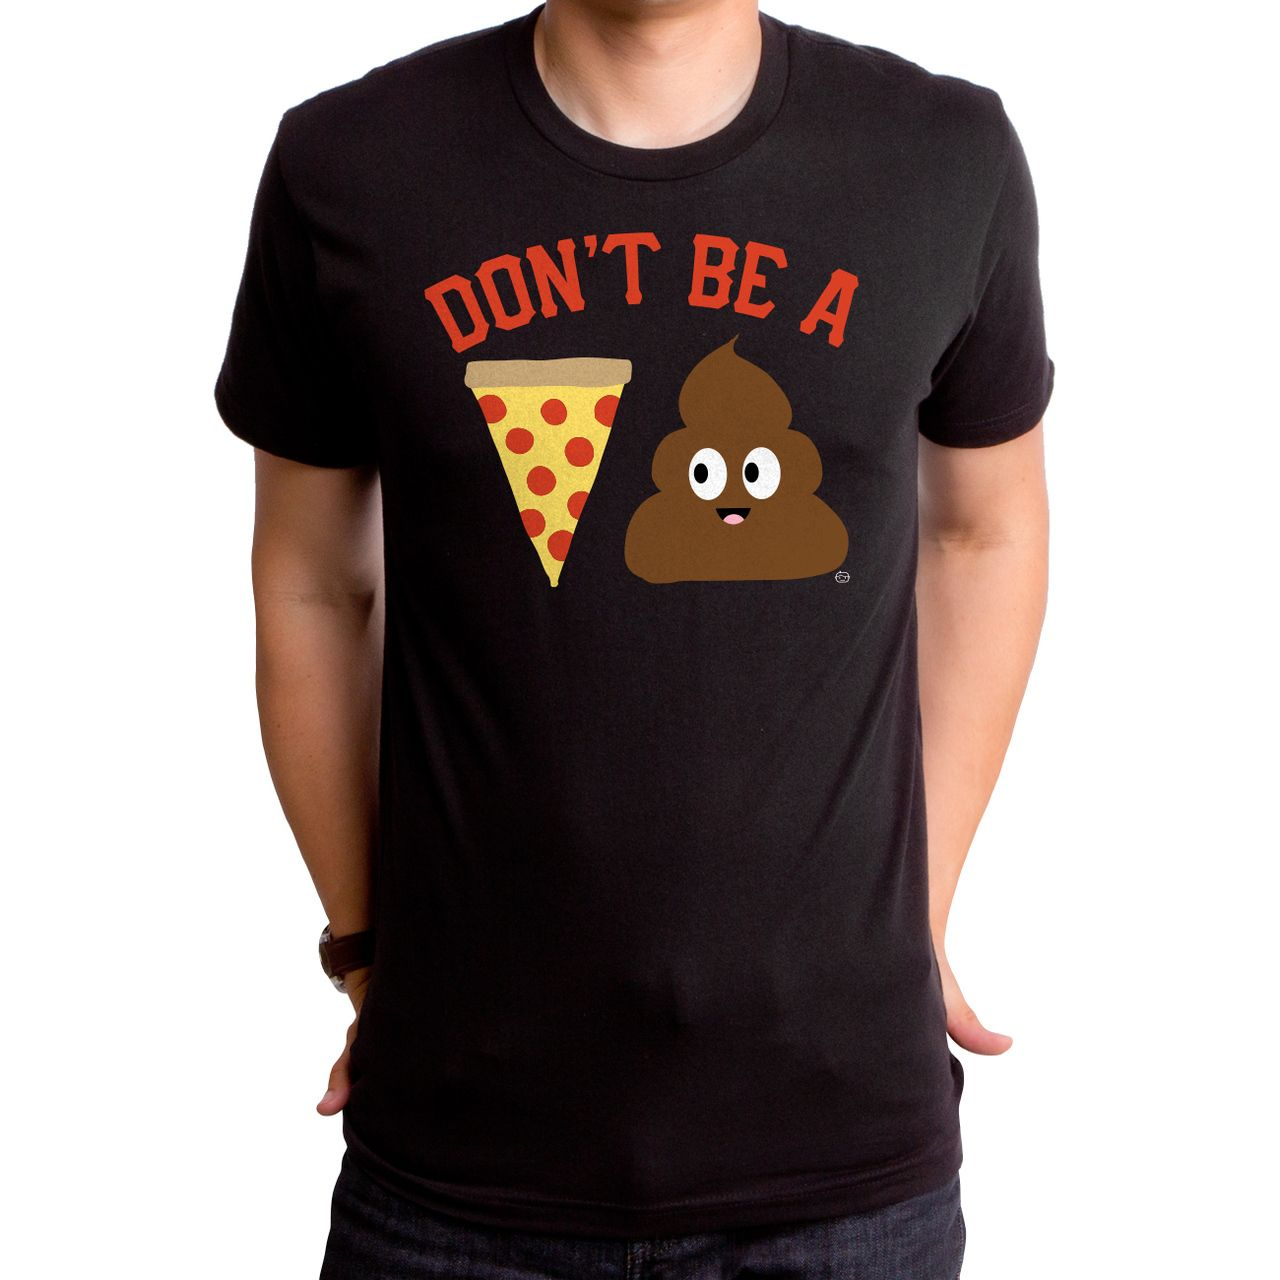 Don't Be A Pizza Poop Men's T-Shirt - Funny Pizza T-